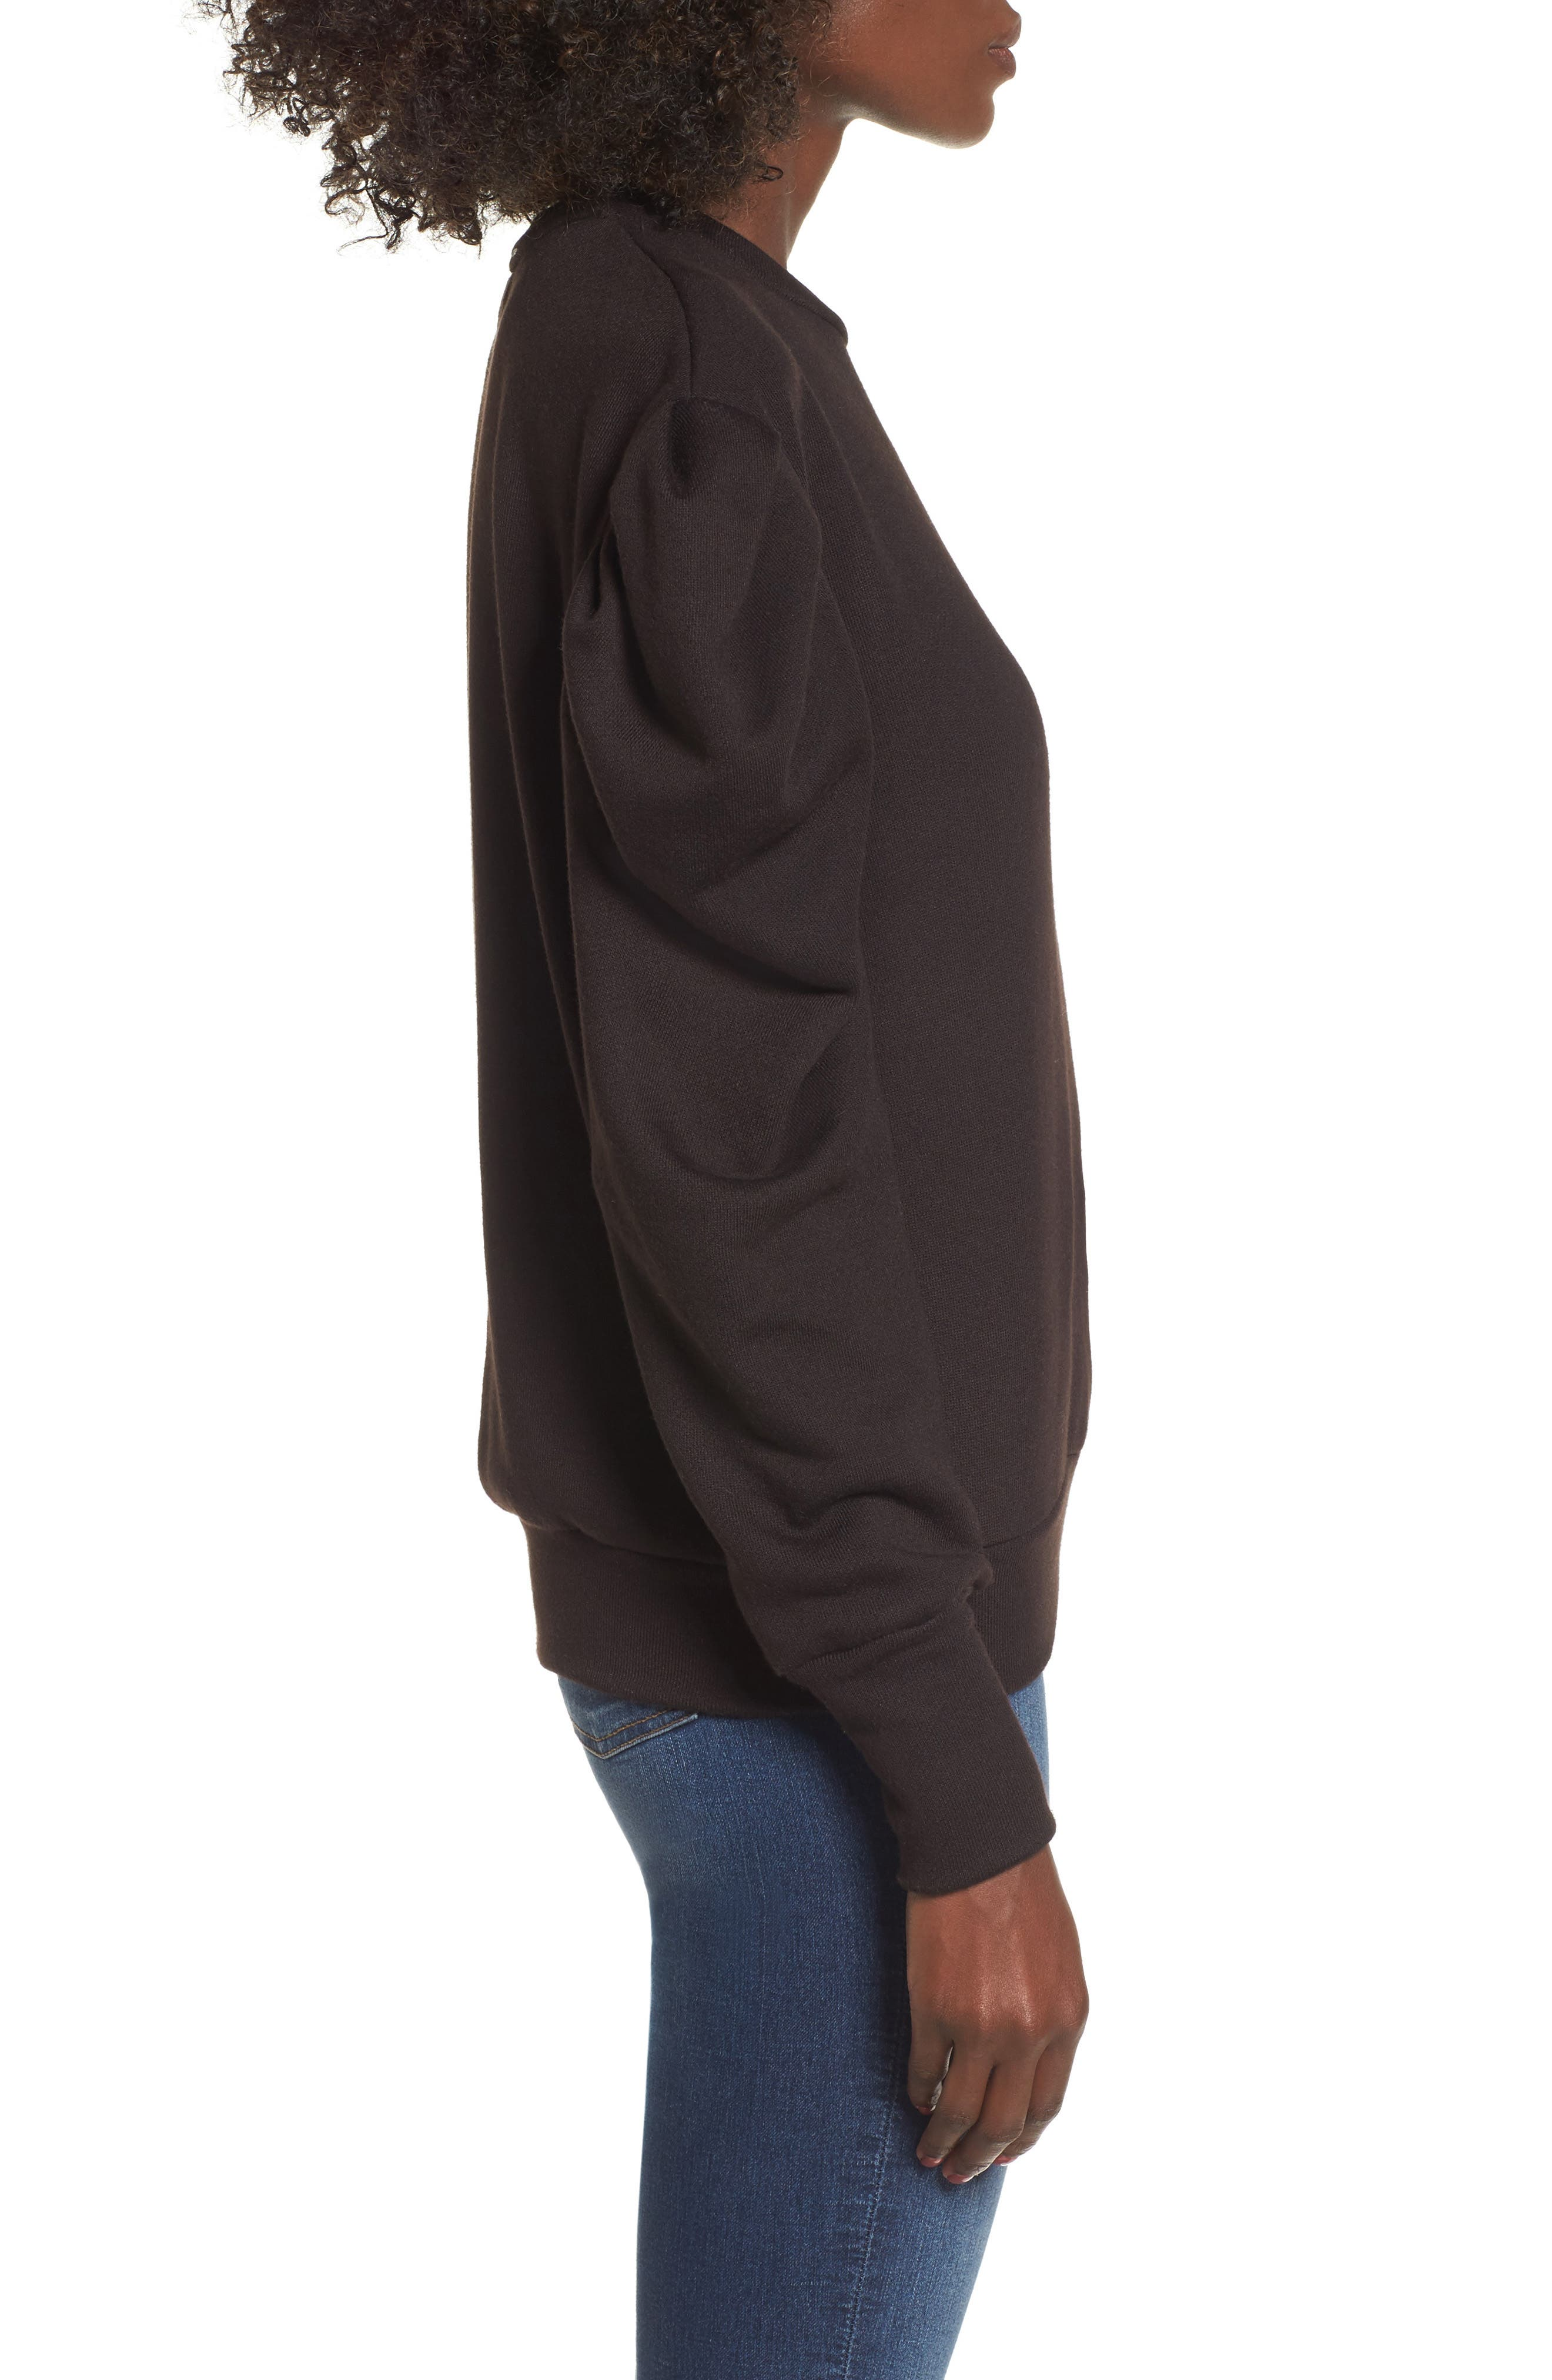 James Balloon Sleeve Sweatshirt,                             Alternate thumbnail 3, color,                             001